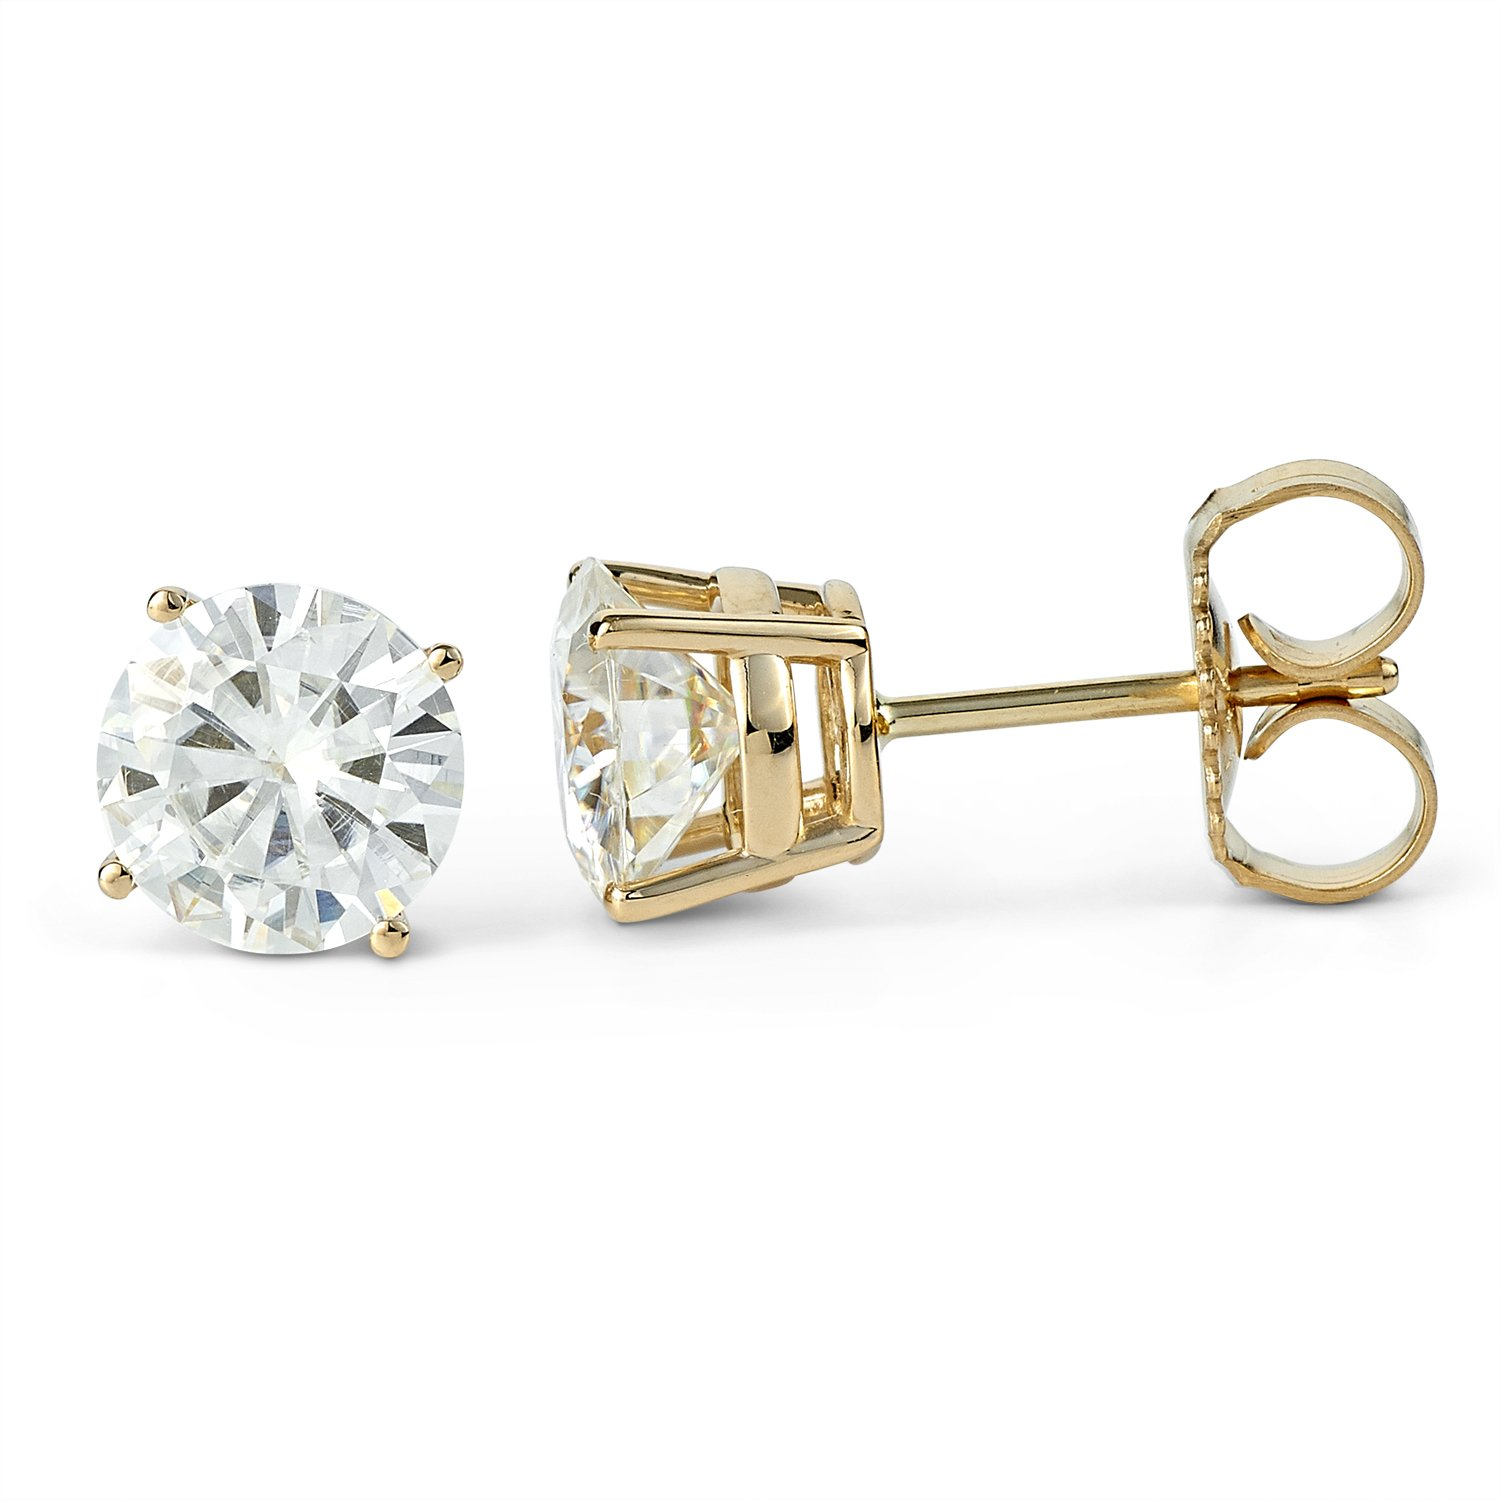 35064b96a Amazon.com: Forever Classic 6.5mm Round Moissanite Stud Earrings, 2.00cttw  DEW by Charles & Colvard: Jewelry